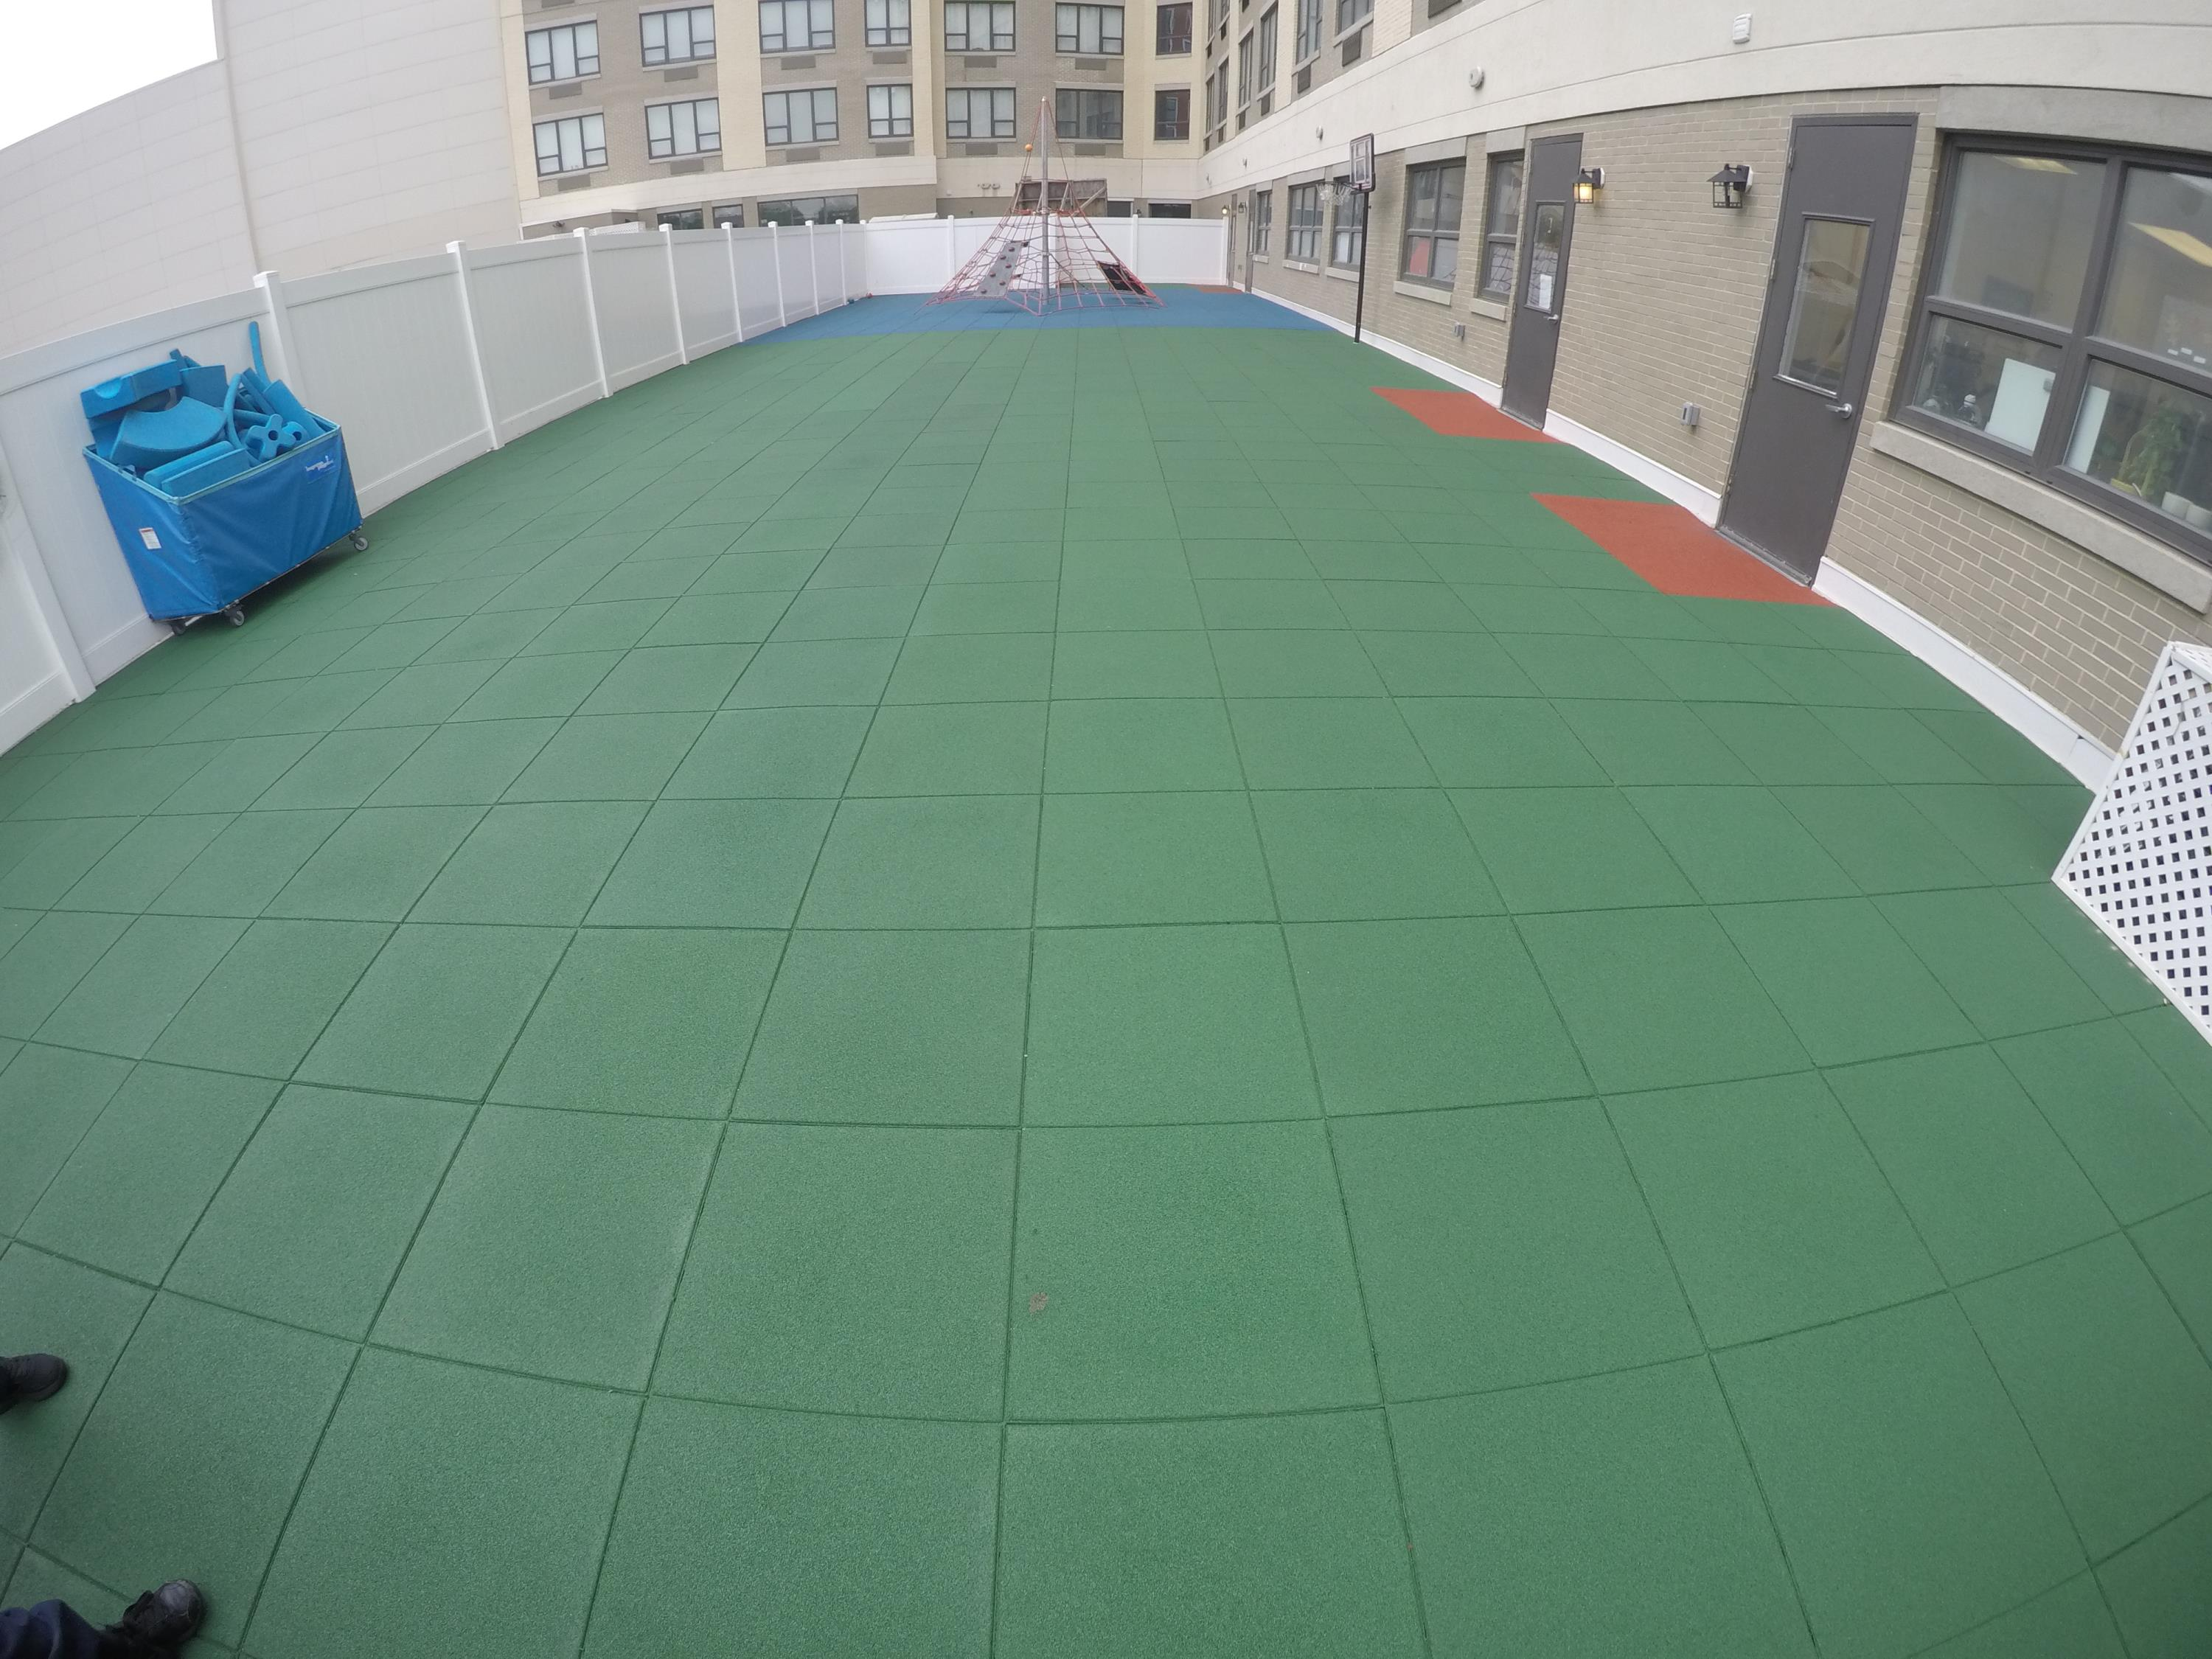 Unity Surfacing's Play-Land Tiles at this daycare center